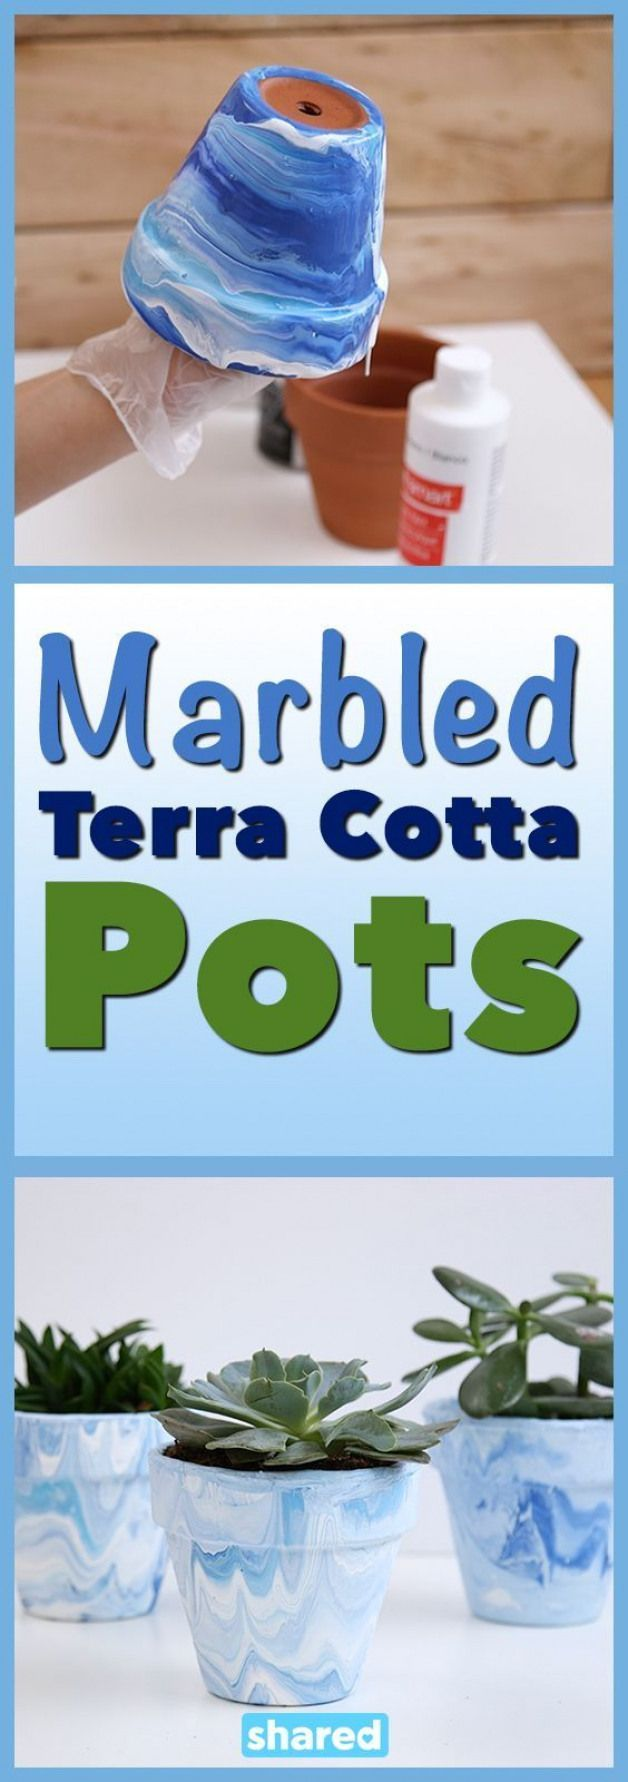 Marbled Terra Cotta Pots #garden #DIY #painting #…